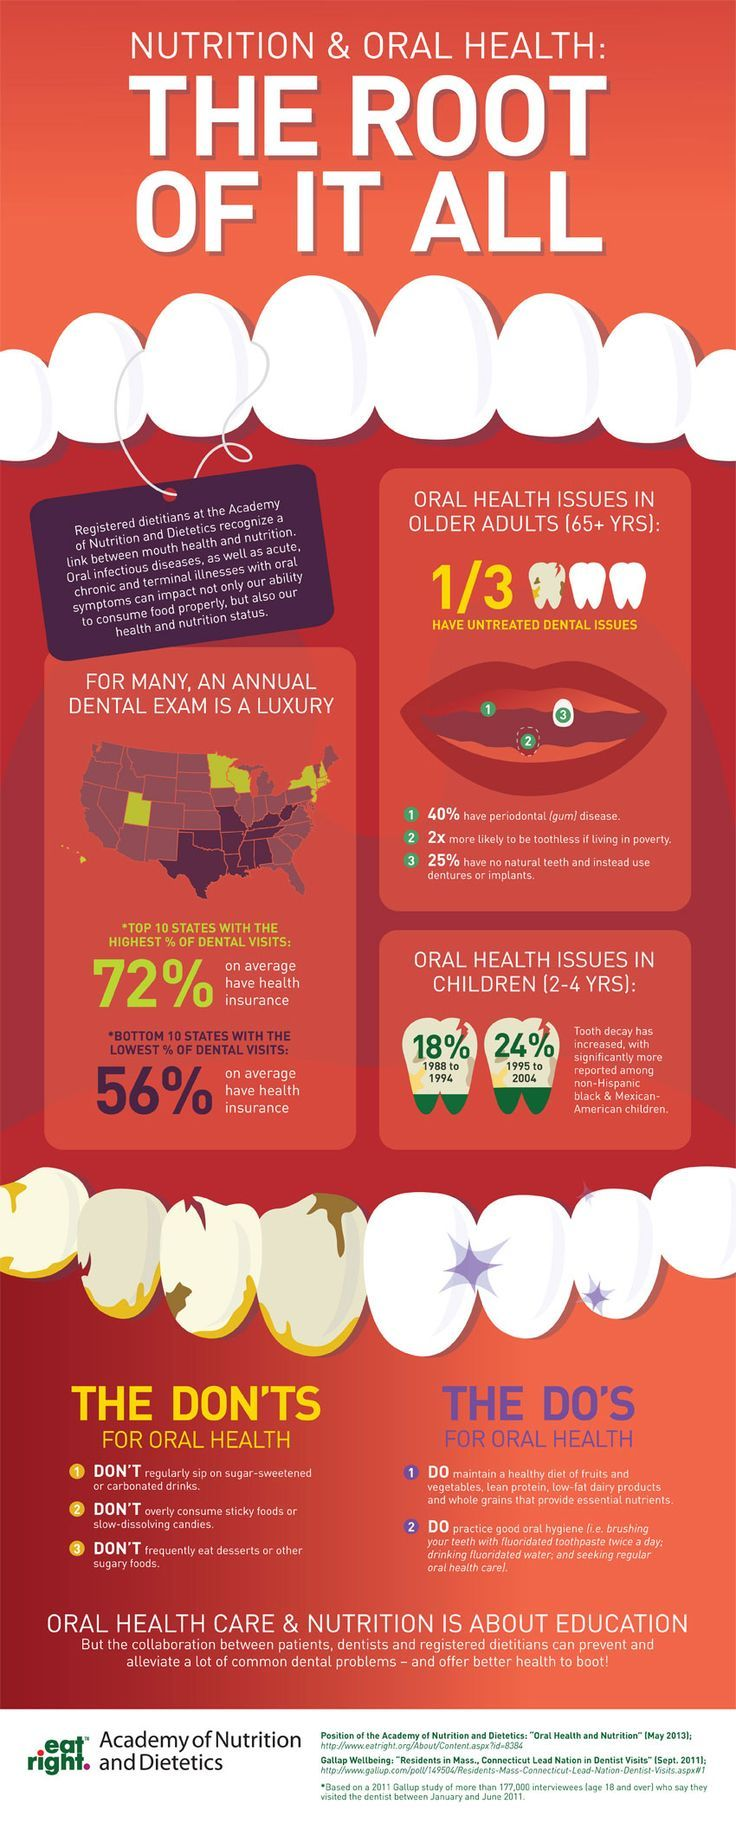 Registered Dietitians At The Academy Of Nutrition And Dietetics Recognize A Link Between Mouth Health And Nutr Infographic Health Oral Care Routine Oral Health